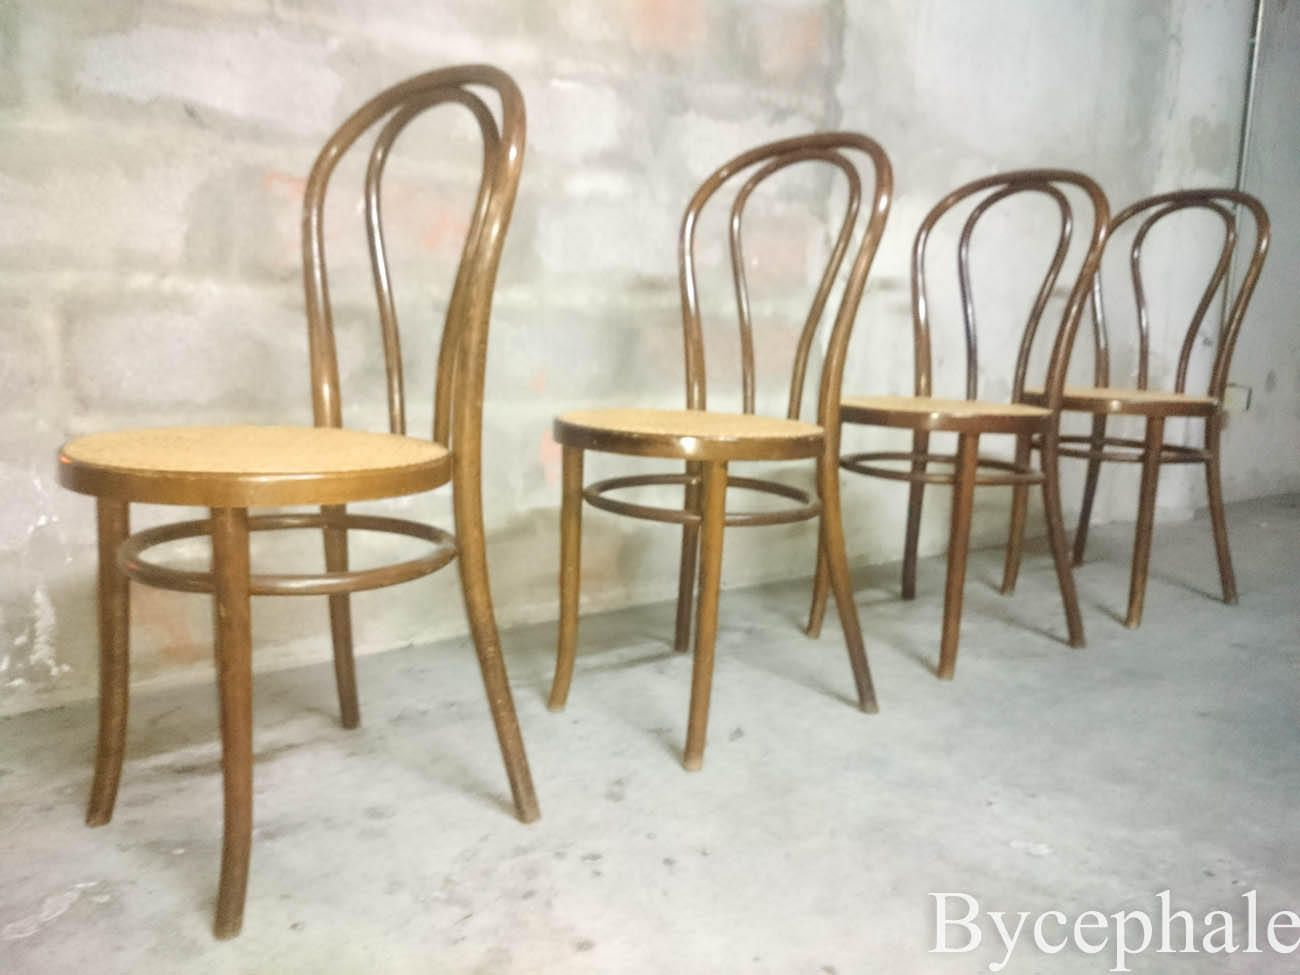 Vintage thonet style cafe chairs with stenciled seats - 2 Of 4 Vintage Bentwood Bistro Chairs Thonet Signed Cane Seat By Bycephale On Etsy